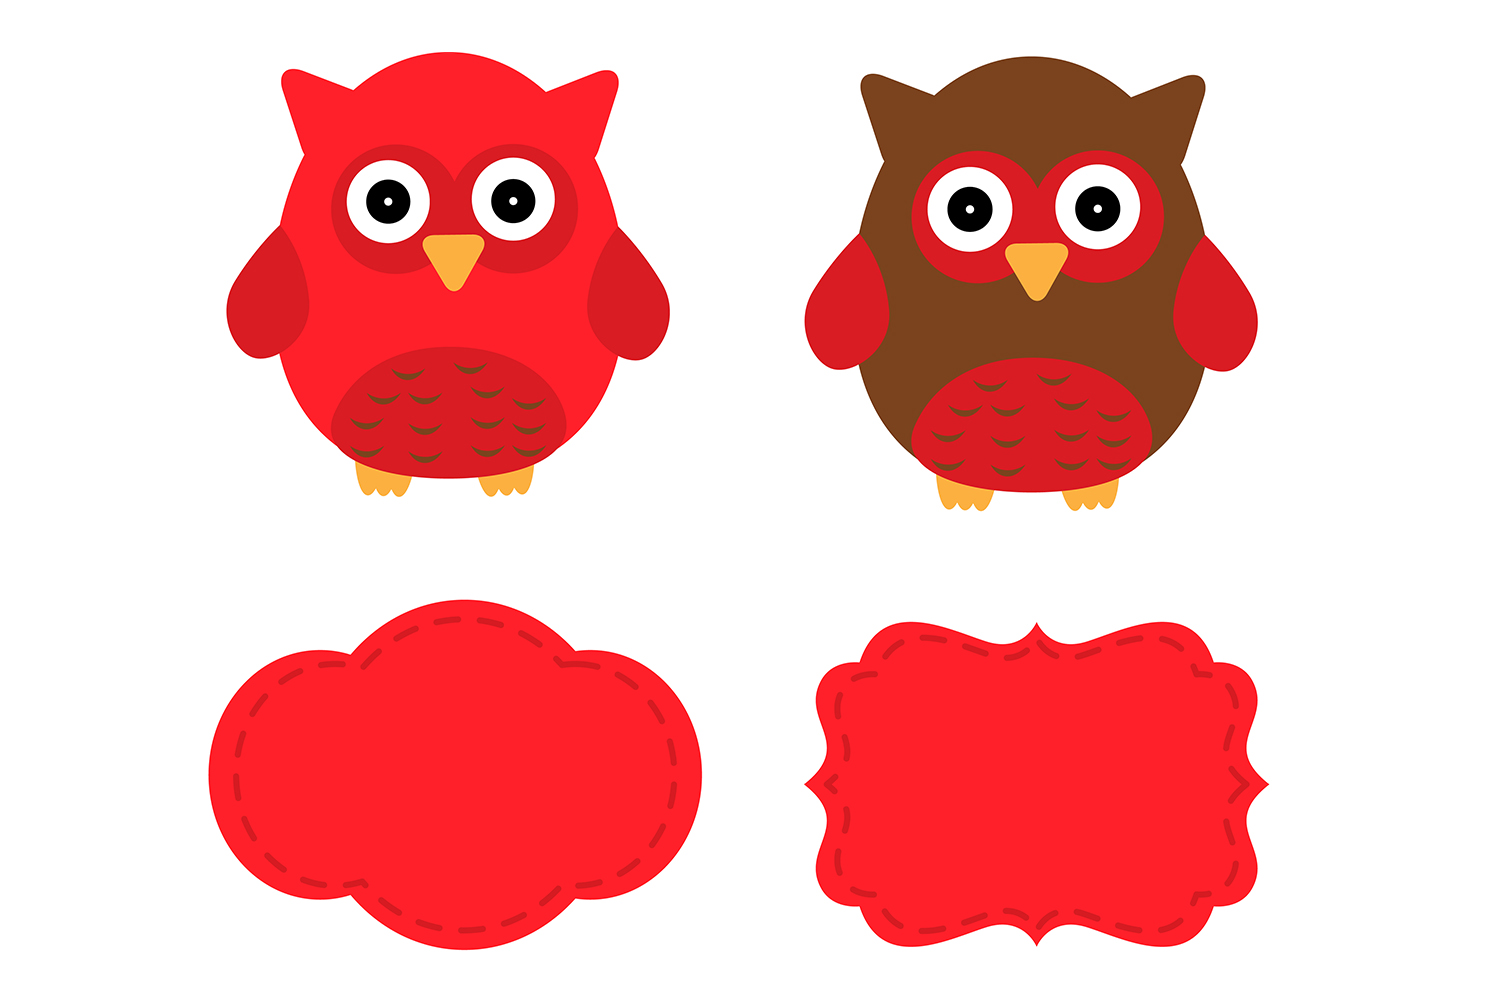 Red owl clipart 4 » Clipart Station.